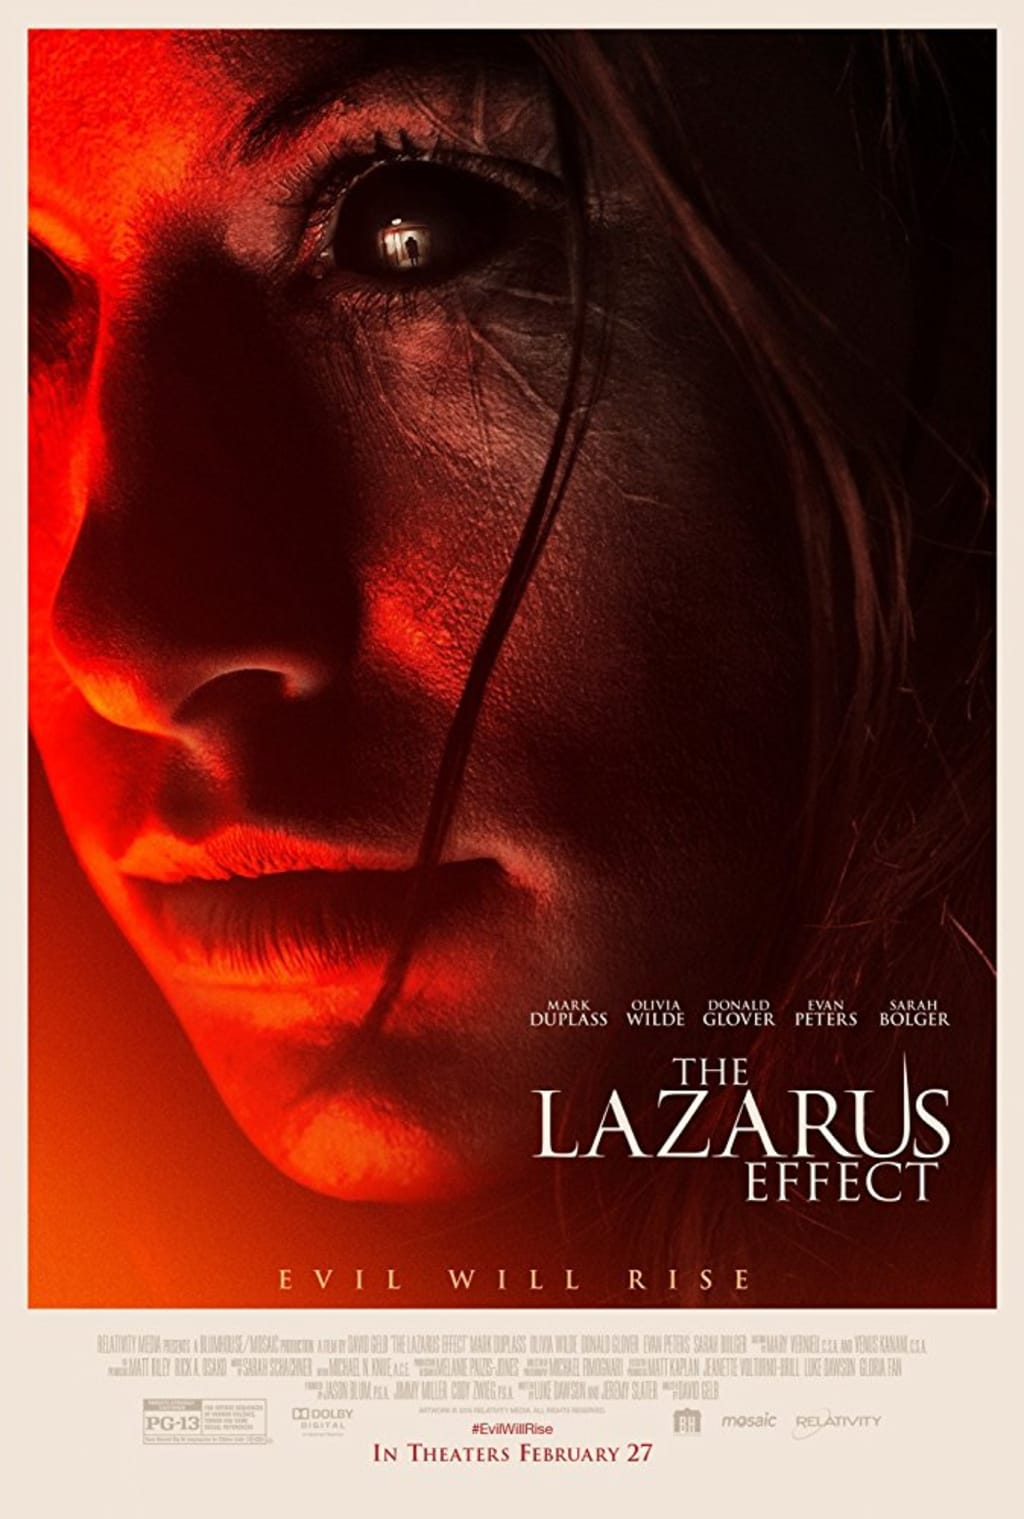 Reed Alexander's Horror Review of 'The Lazarus Effect' (2015)